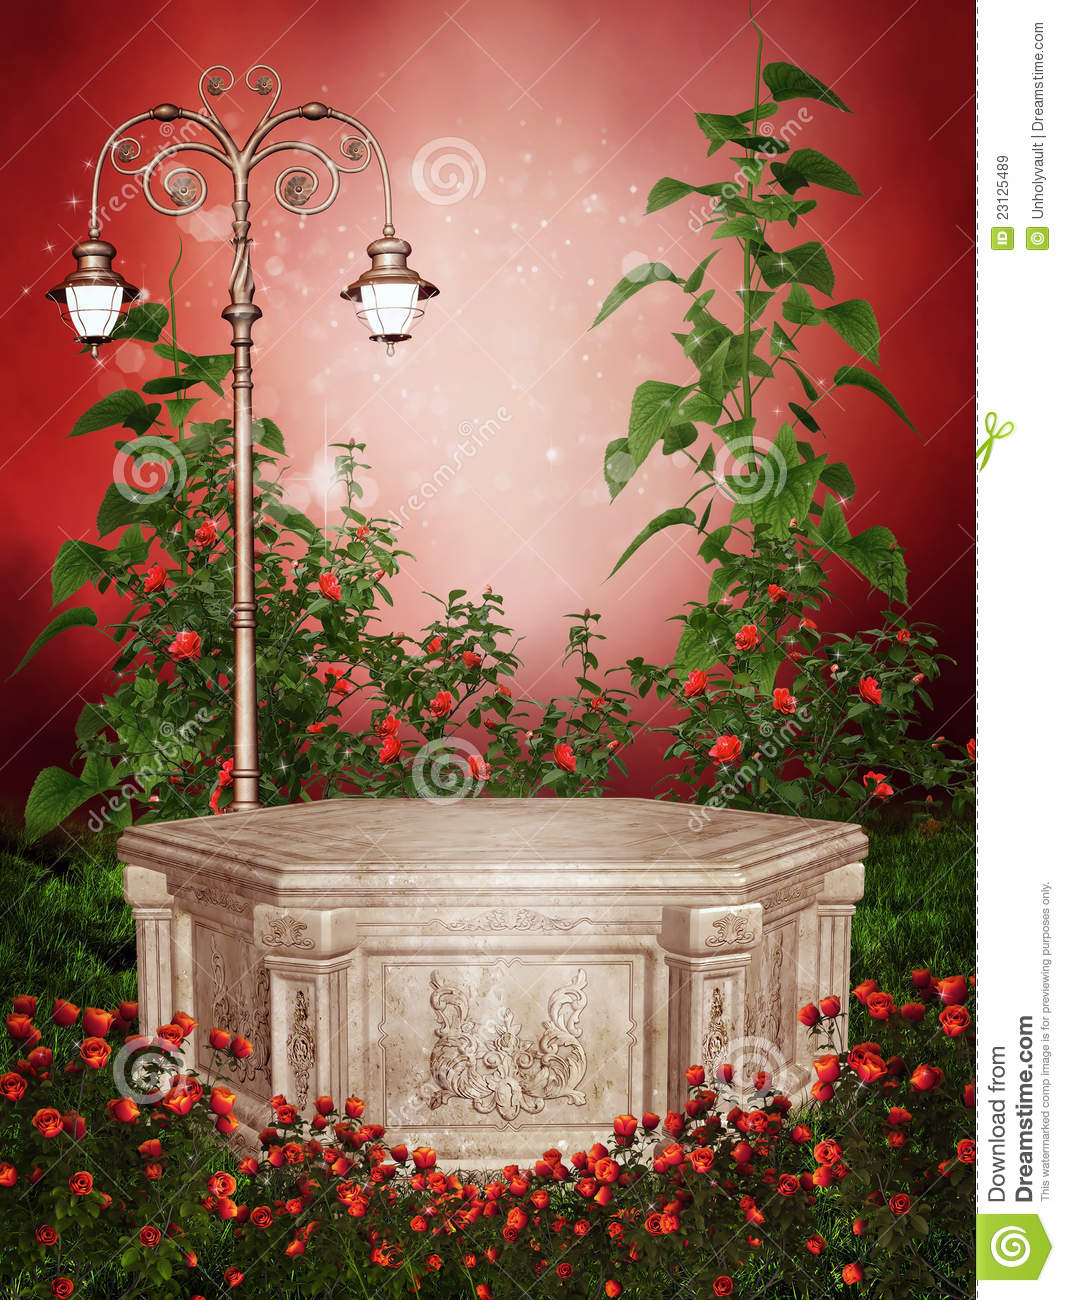 Roses In Garden: Rose Garden With A Victorian Lamp Stock Illustration